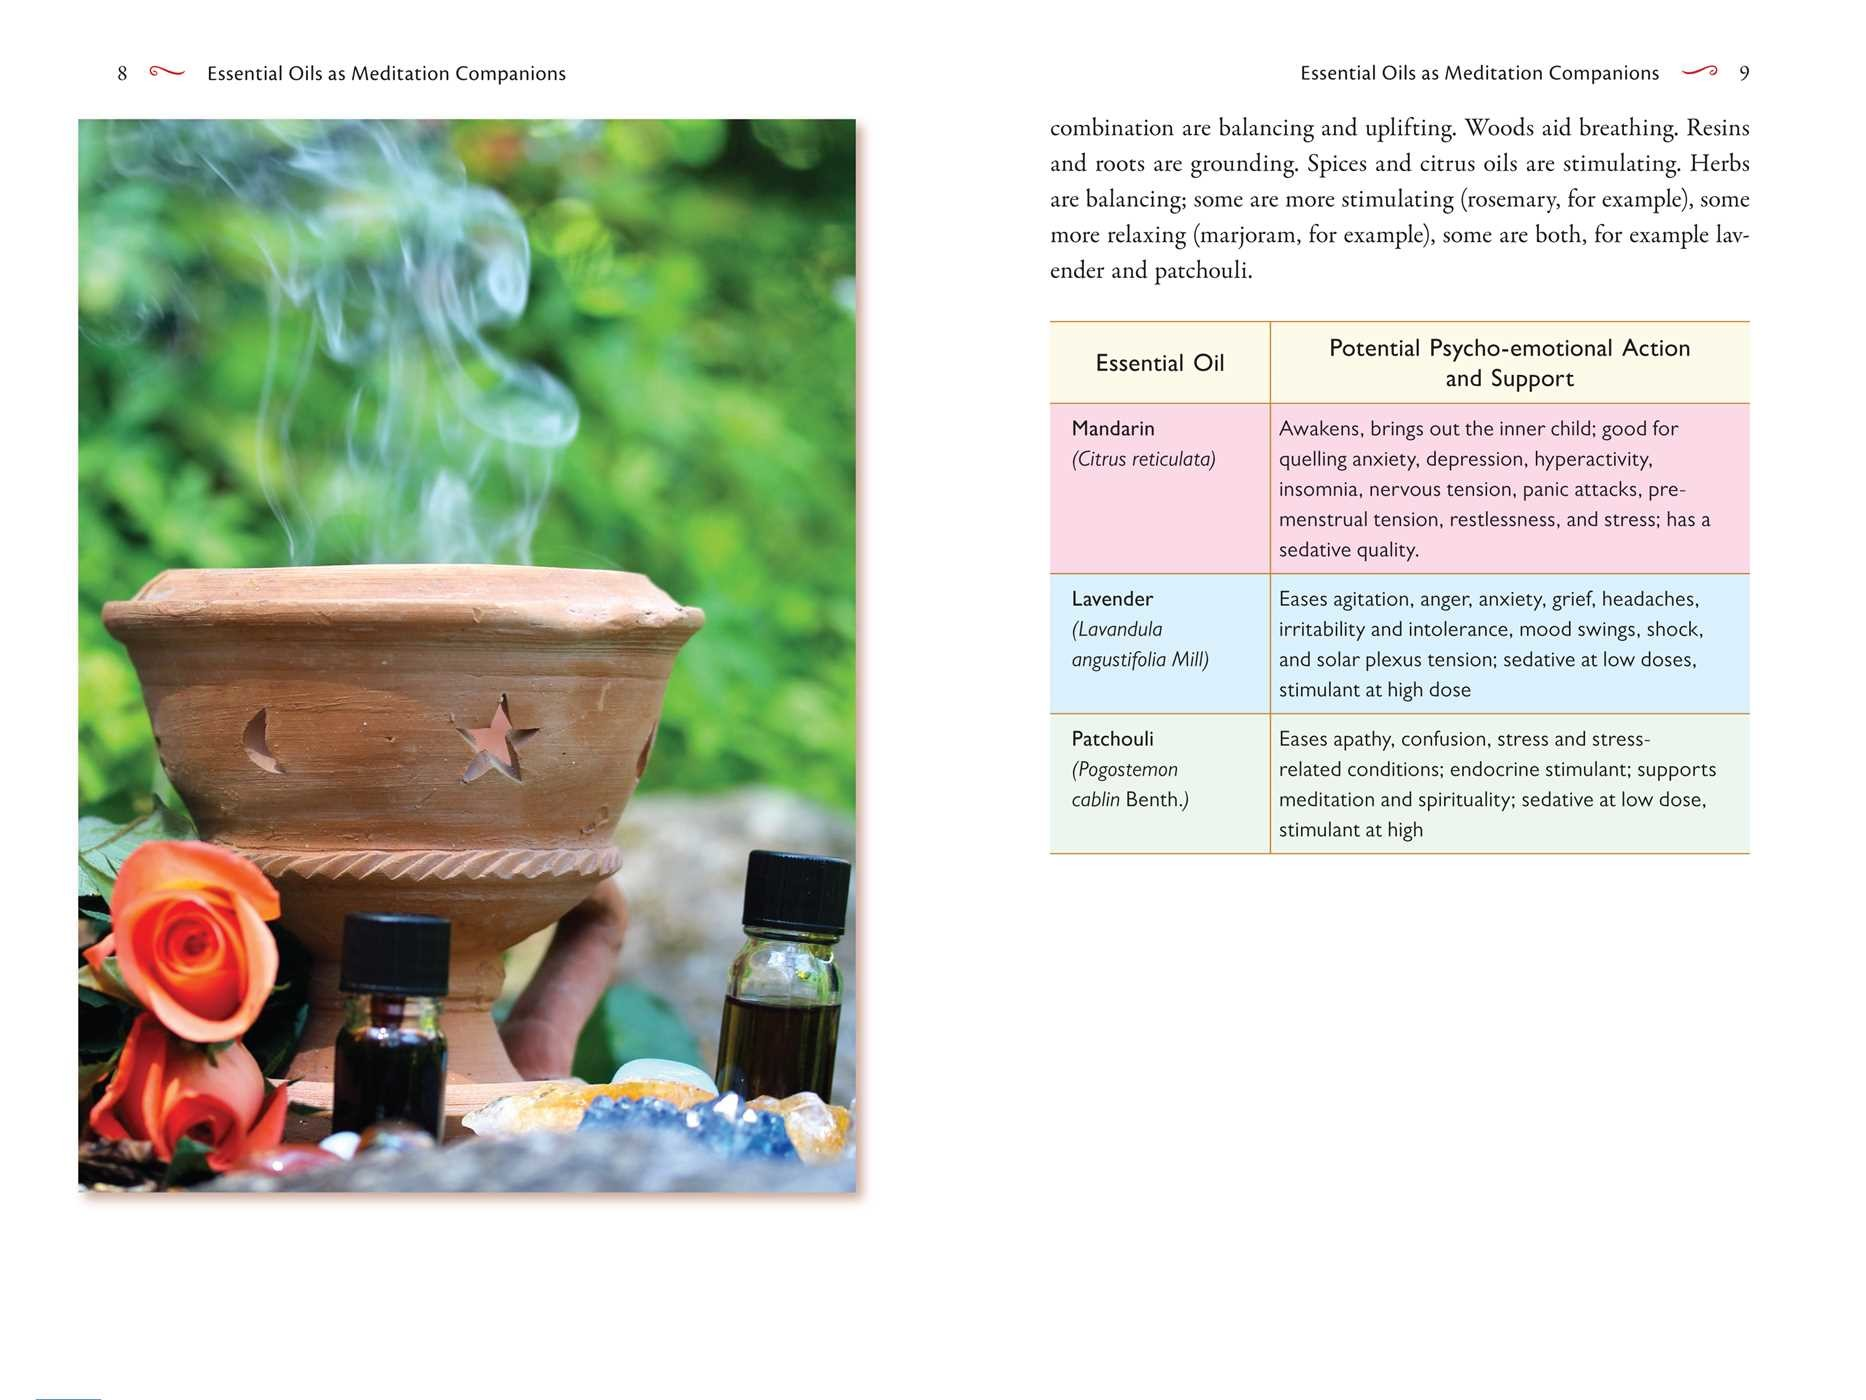 Essential oils for mindfulness and meditation 9781620557624.in03